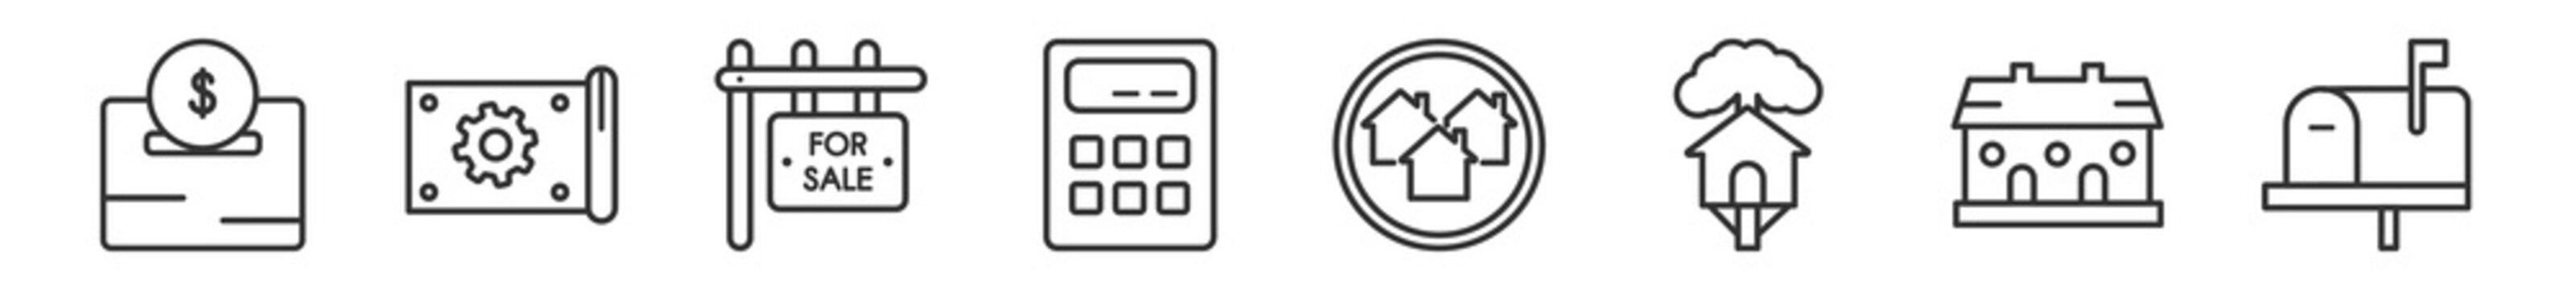 outline set of real estate line icons. linear vector icons such as deposit, technical drawing, for sale, calculate, houses, mailbox. vector illustration.